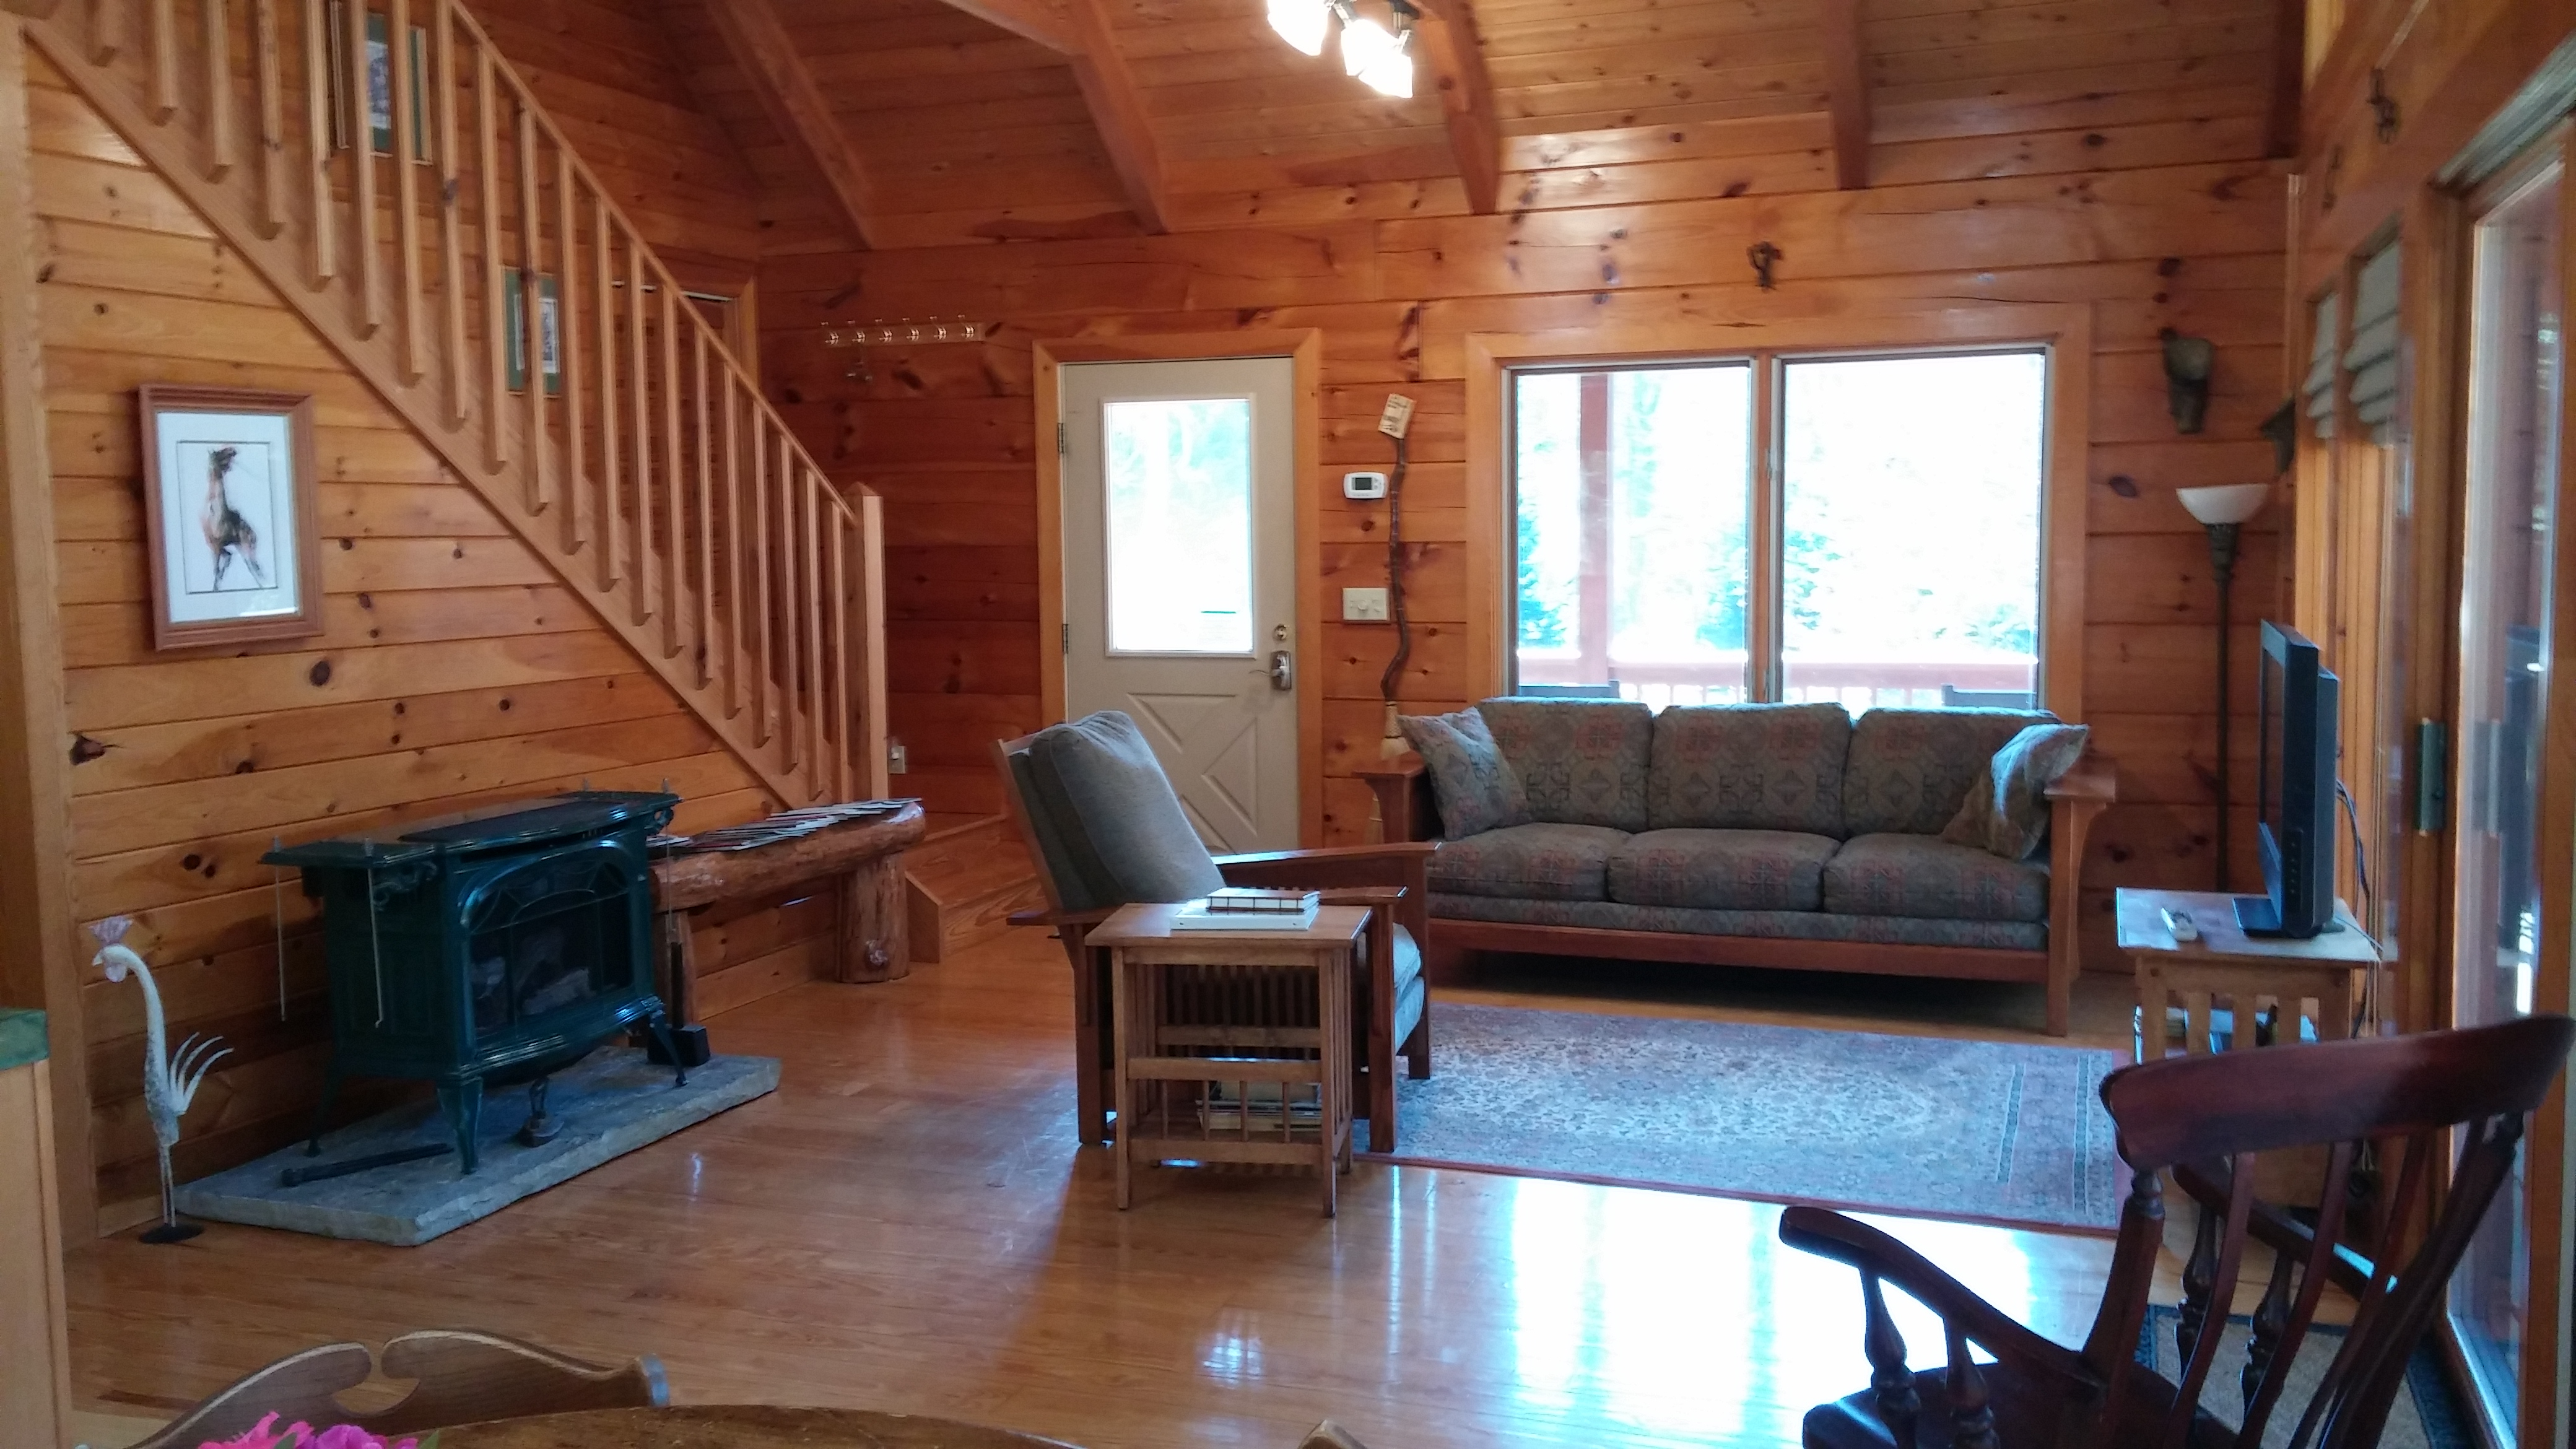 cottages brevard gallery rock wild and homes cottage image view nc in vacation com cabins rentals